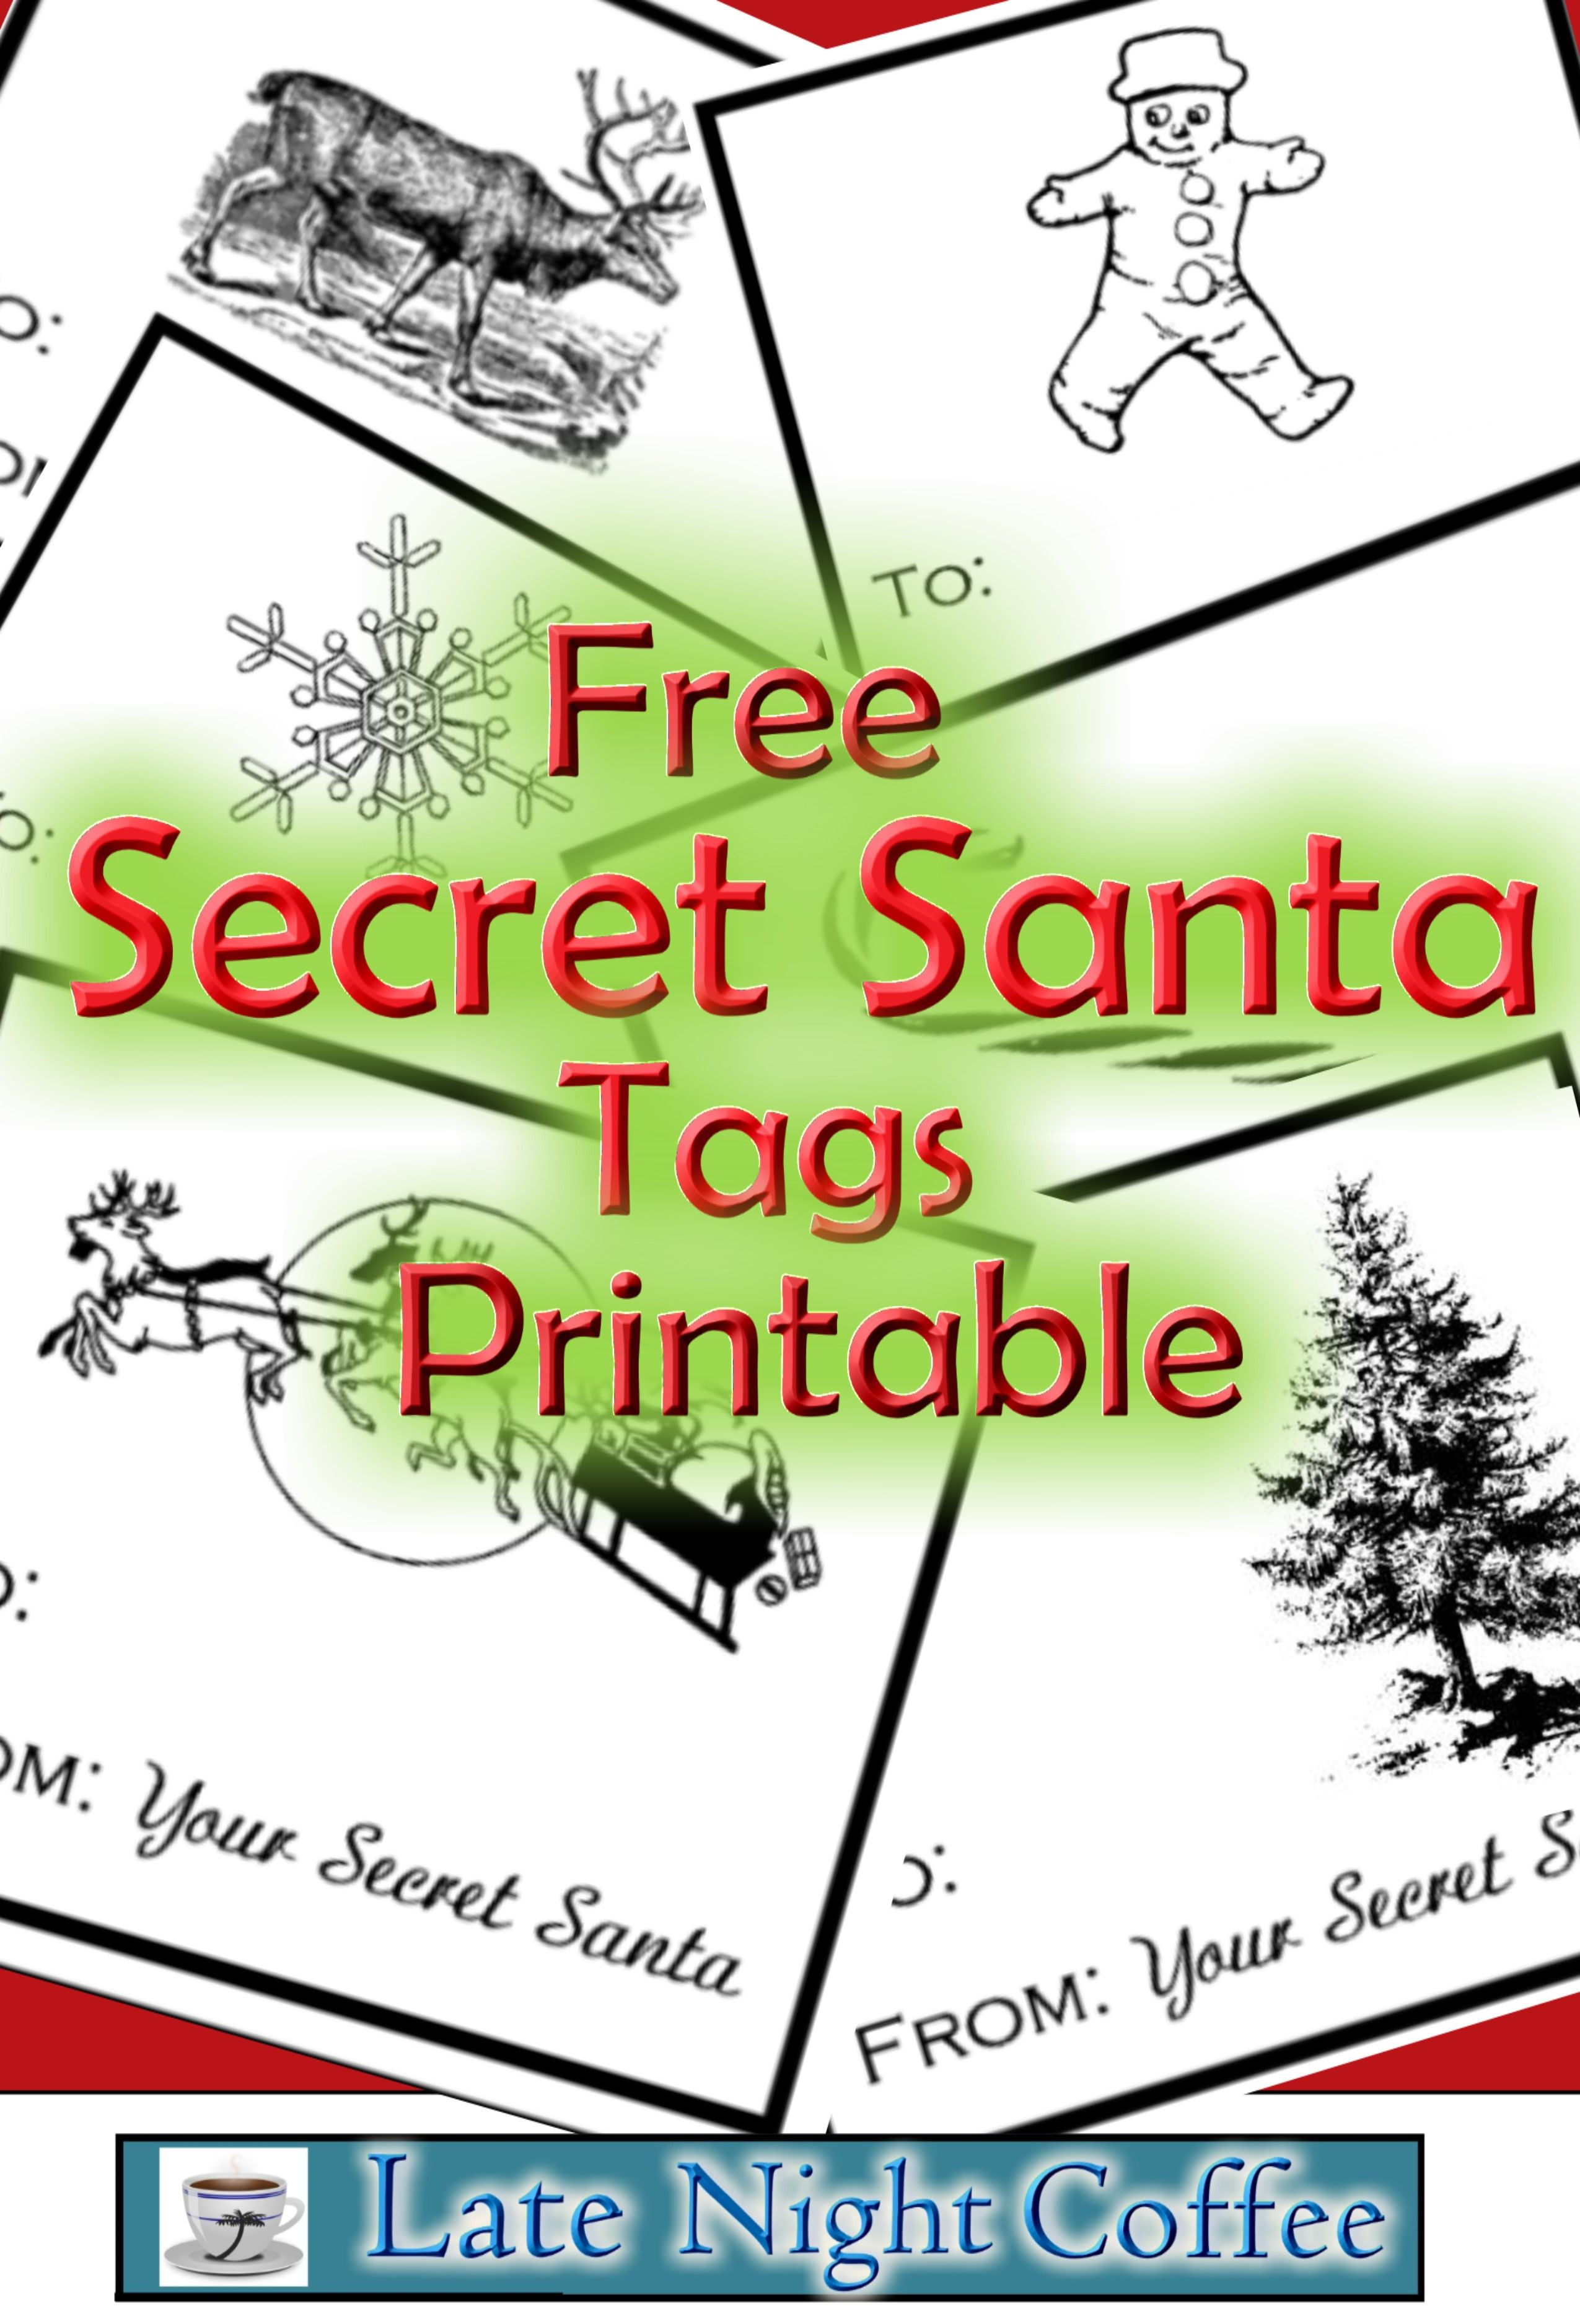 Secret Santa Tags Printable Free Highschoolherd Com Secret Santa